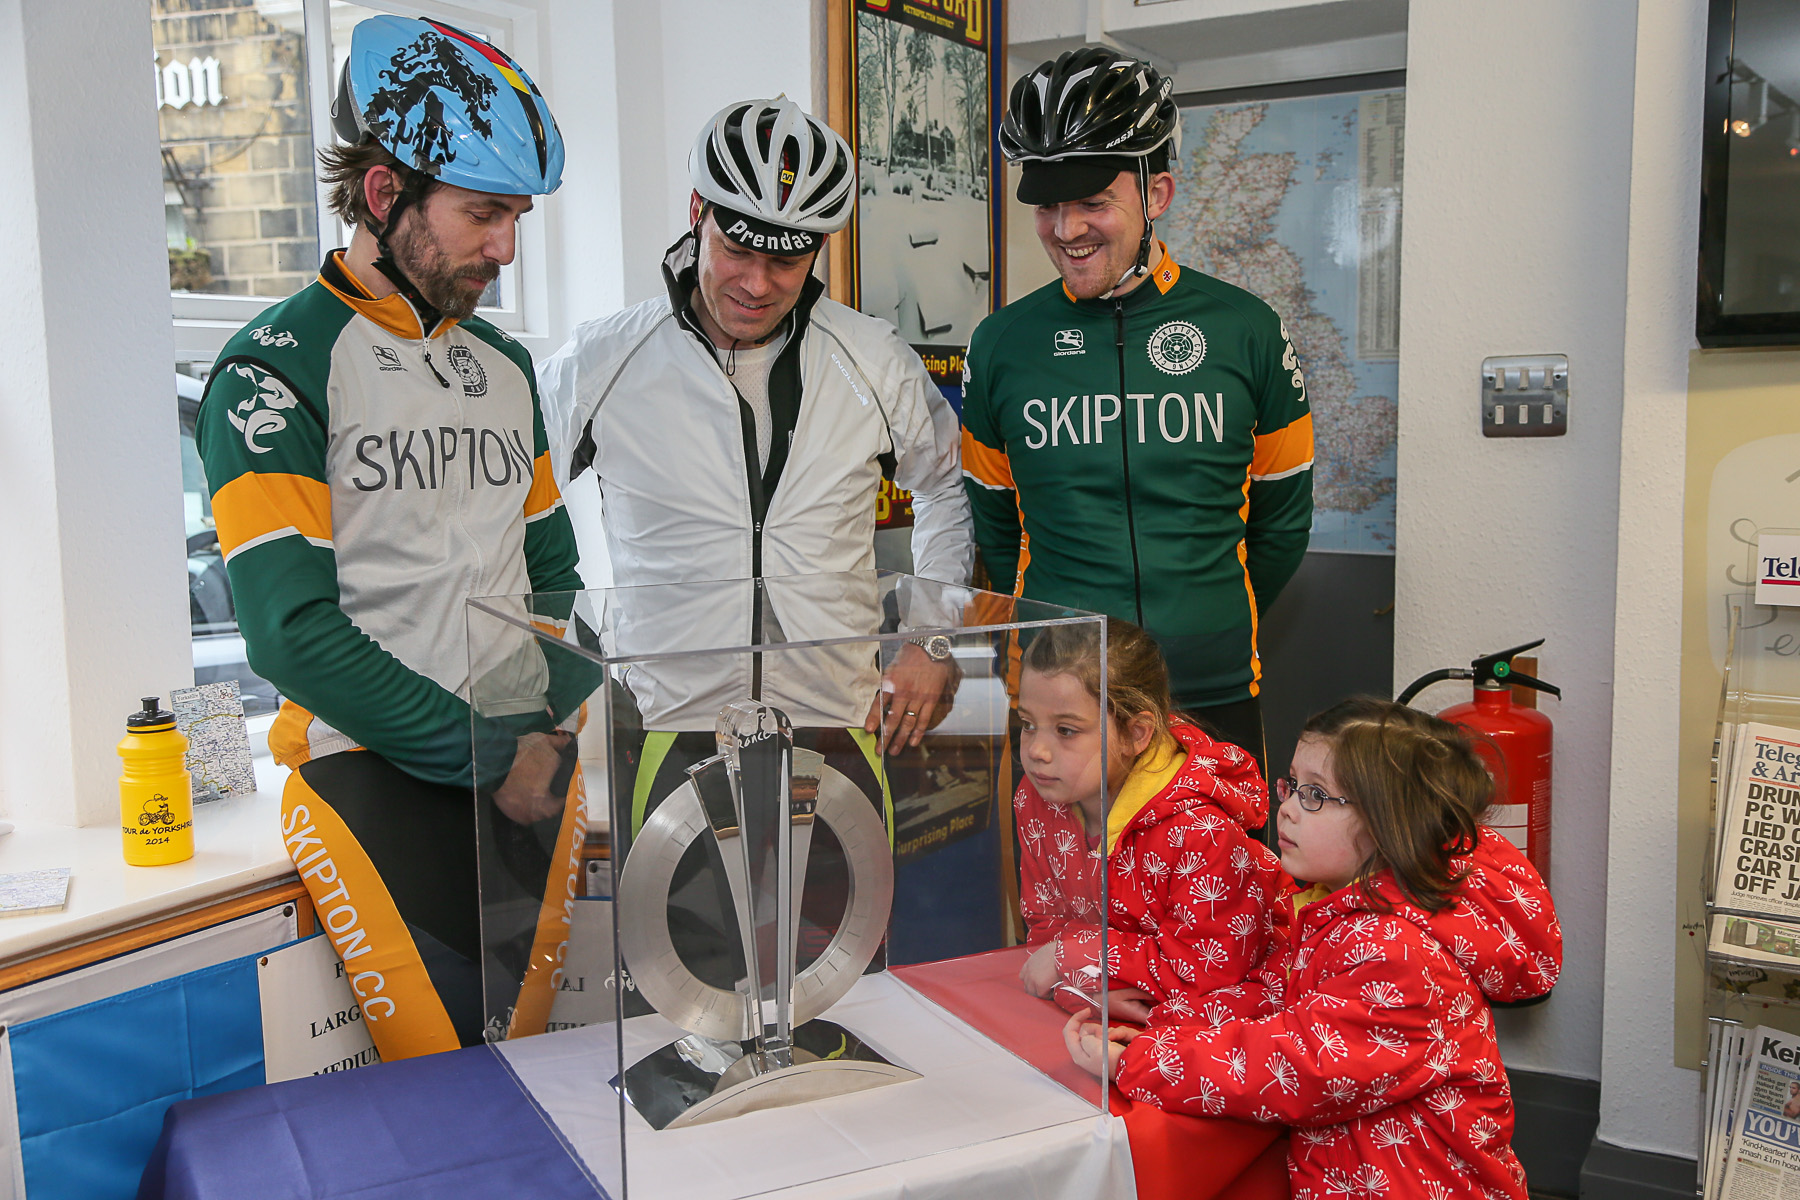 Cyclists Stuart Rider, John Robinson and Luke Mallinder, with children Isobel and Lydia Smalley, admiring the Grand Depart Troph